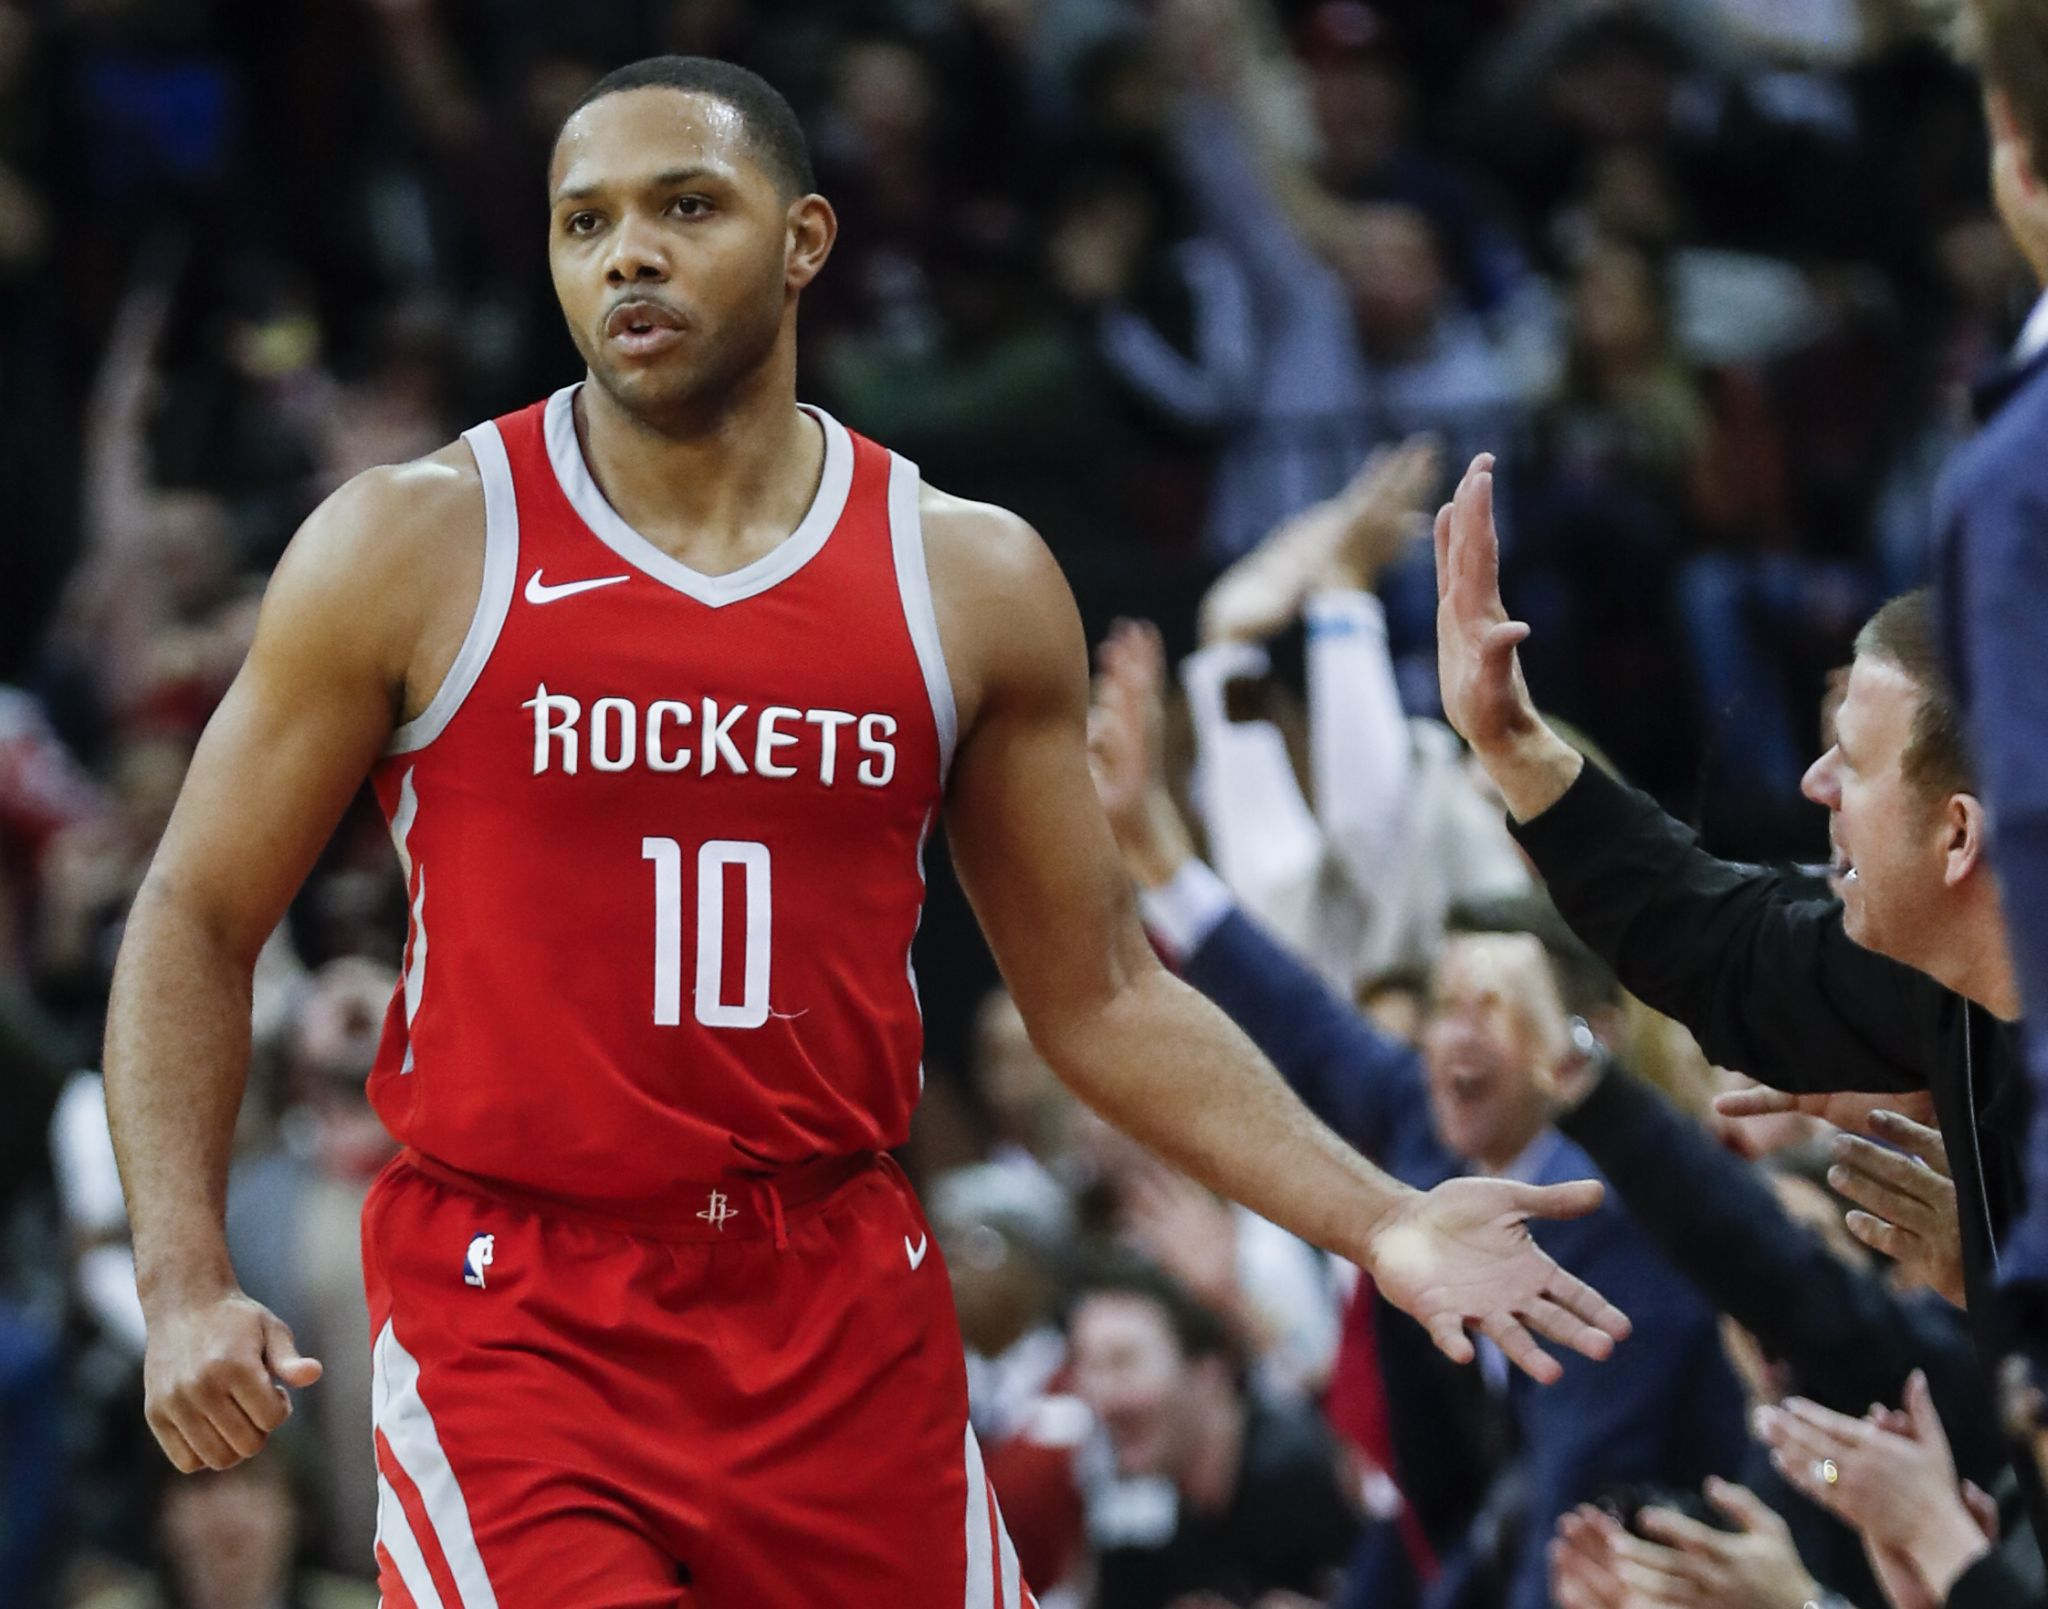 Rockets Guard Eric Gordon On Returning To New Orleans Just